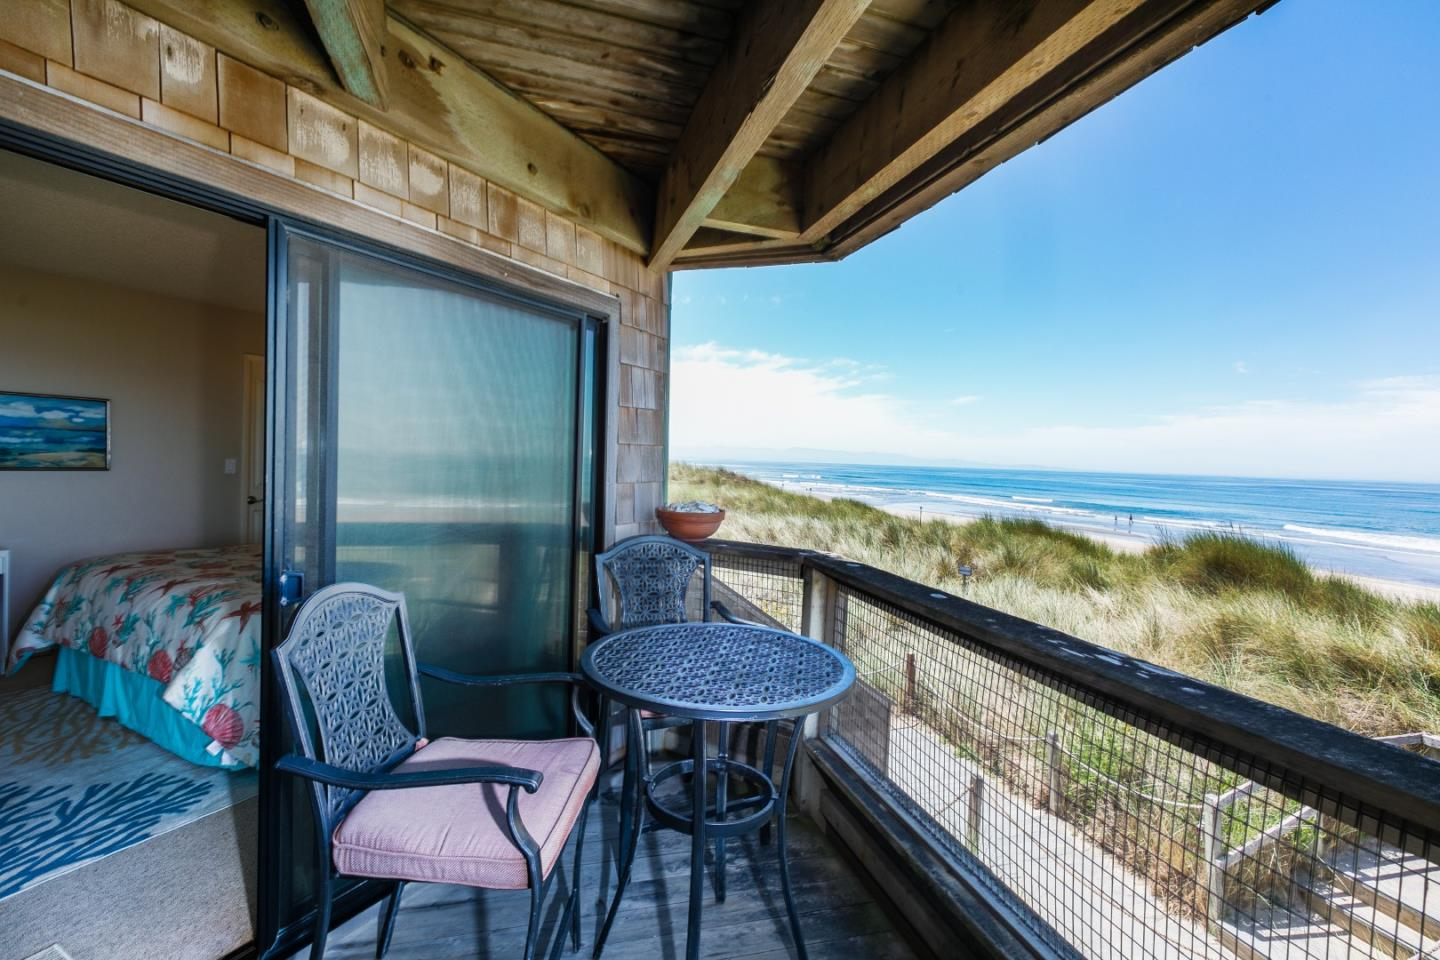 ON THE BEACH AT PAJARO DUNES BEACH COMMUNITY. 180 degree unobstructed view across the Monterey Bay! Right up in front with a full ocean view. Watch the whales, birds and boats on the bay by day, the sunsets over the water and city lights of Monterey and Santa Cruz at night. This ramp accessible condo is on the second floor providing easy access. The condo has been beautifully upgraded and is really a must see beach home. All furniture included with sale. Shorebirds is a gated community located about half way between Santa Cruz and Monterey. It's delightfully remote yet close to shopping, fine dining, world famous golf courses and surf spots. This is a private, gated community with 24/7 mobile security and a full fire department on site. These homes may be used as vacation rentals, long term rentals, primary home or just use for family and friends beach hide away. Homeowner's pets (2) are welcome here.